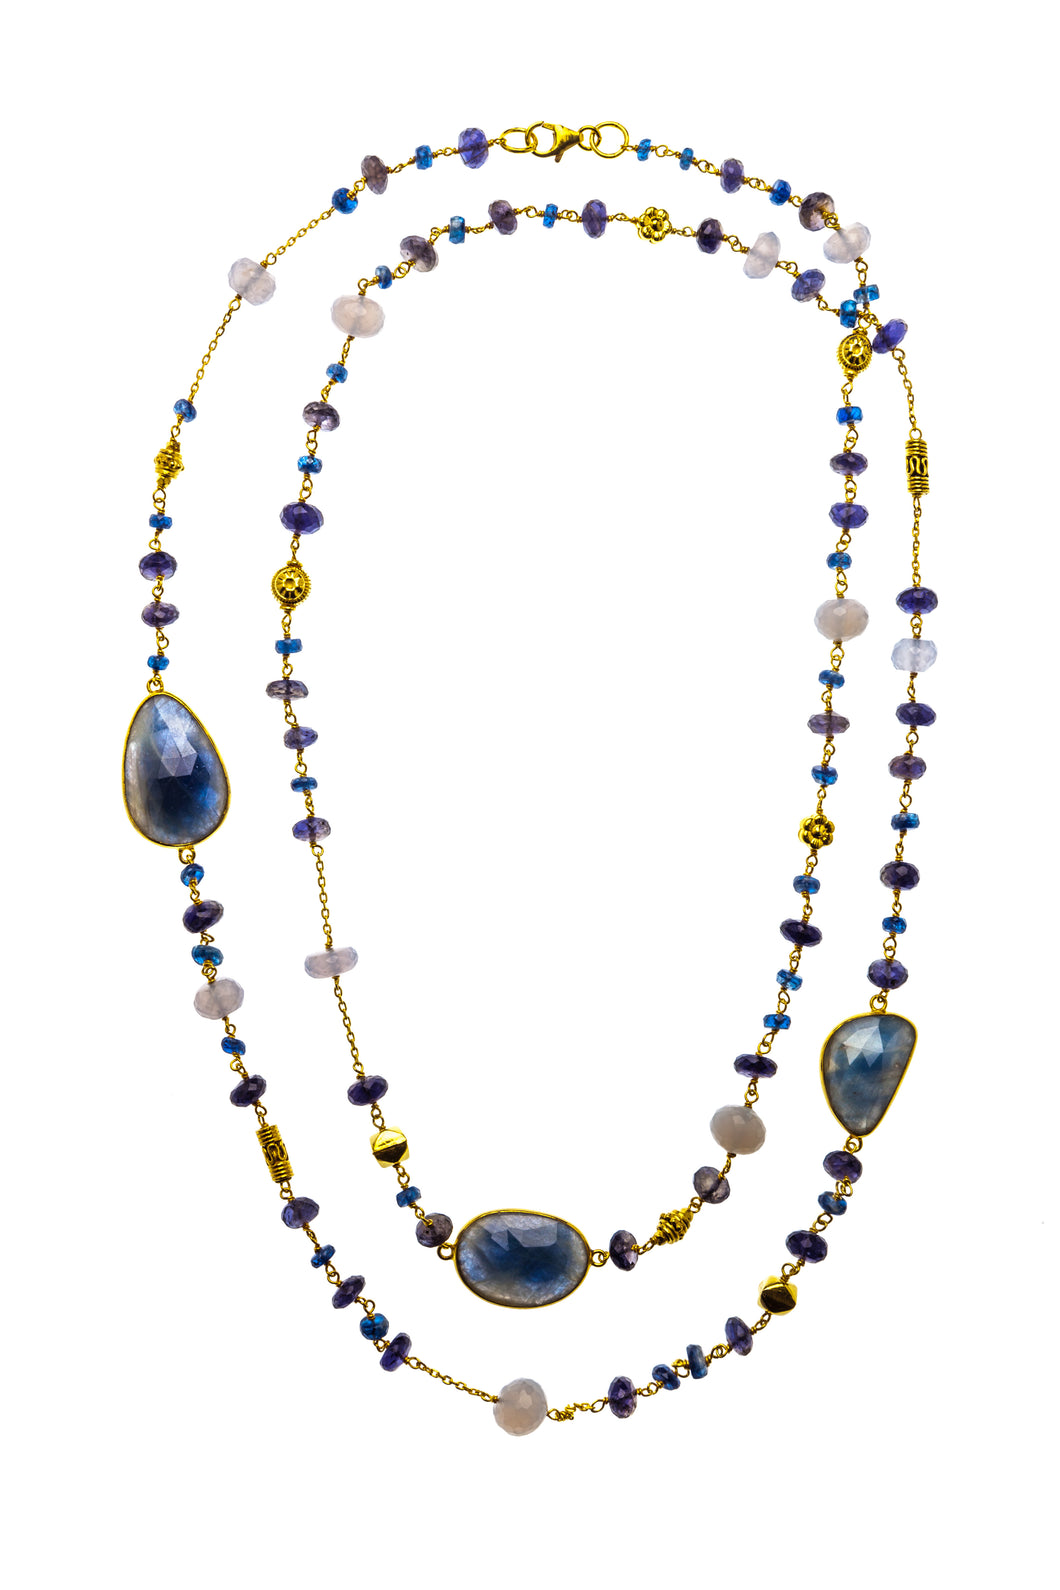 40-inch Gemstone Necklace with Brilliant Blue Sapphire Slices in 24kt gold vermeil N004-K